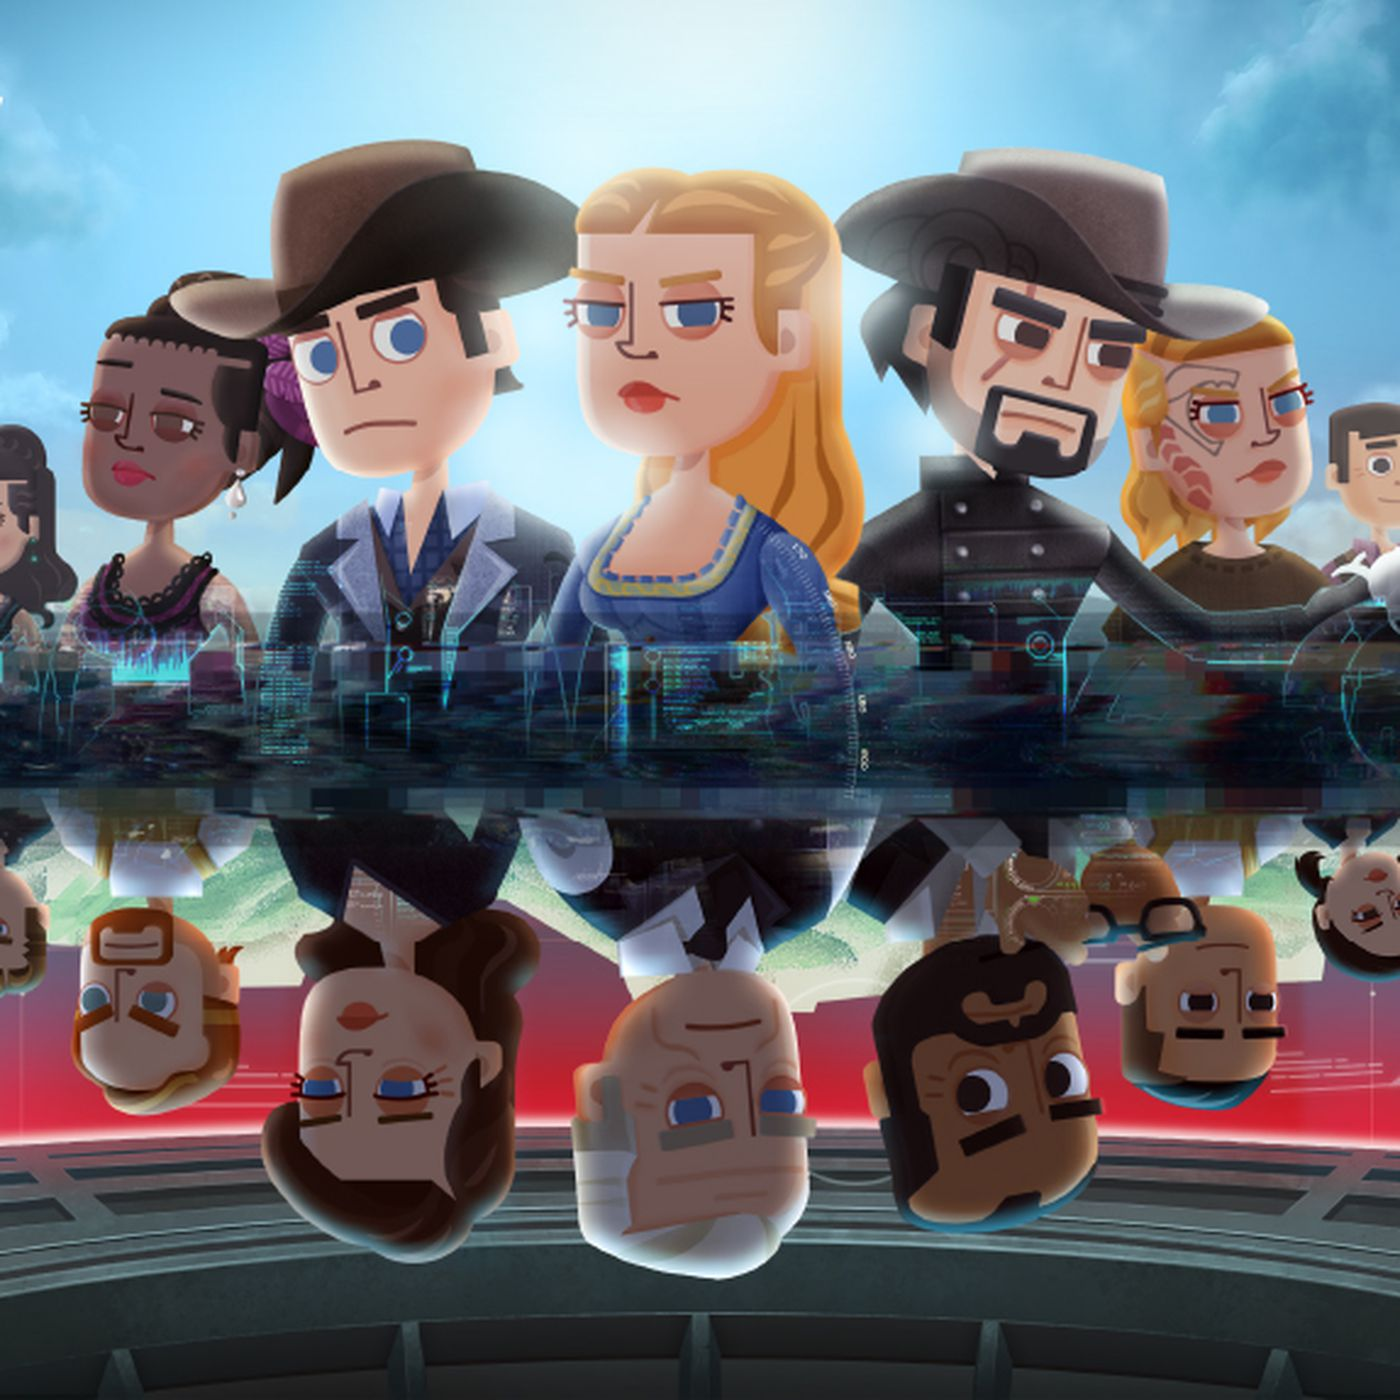 theverge.com - Julia Alexander - Westworld mobile game is shutting down following lawsuit settlement